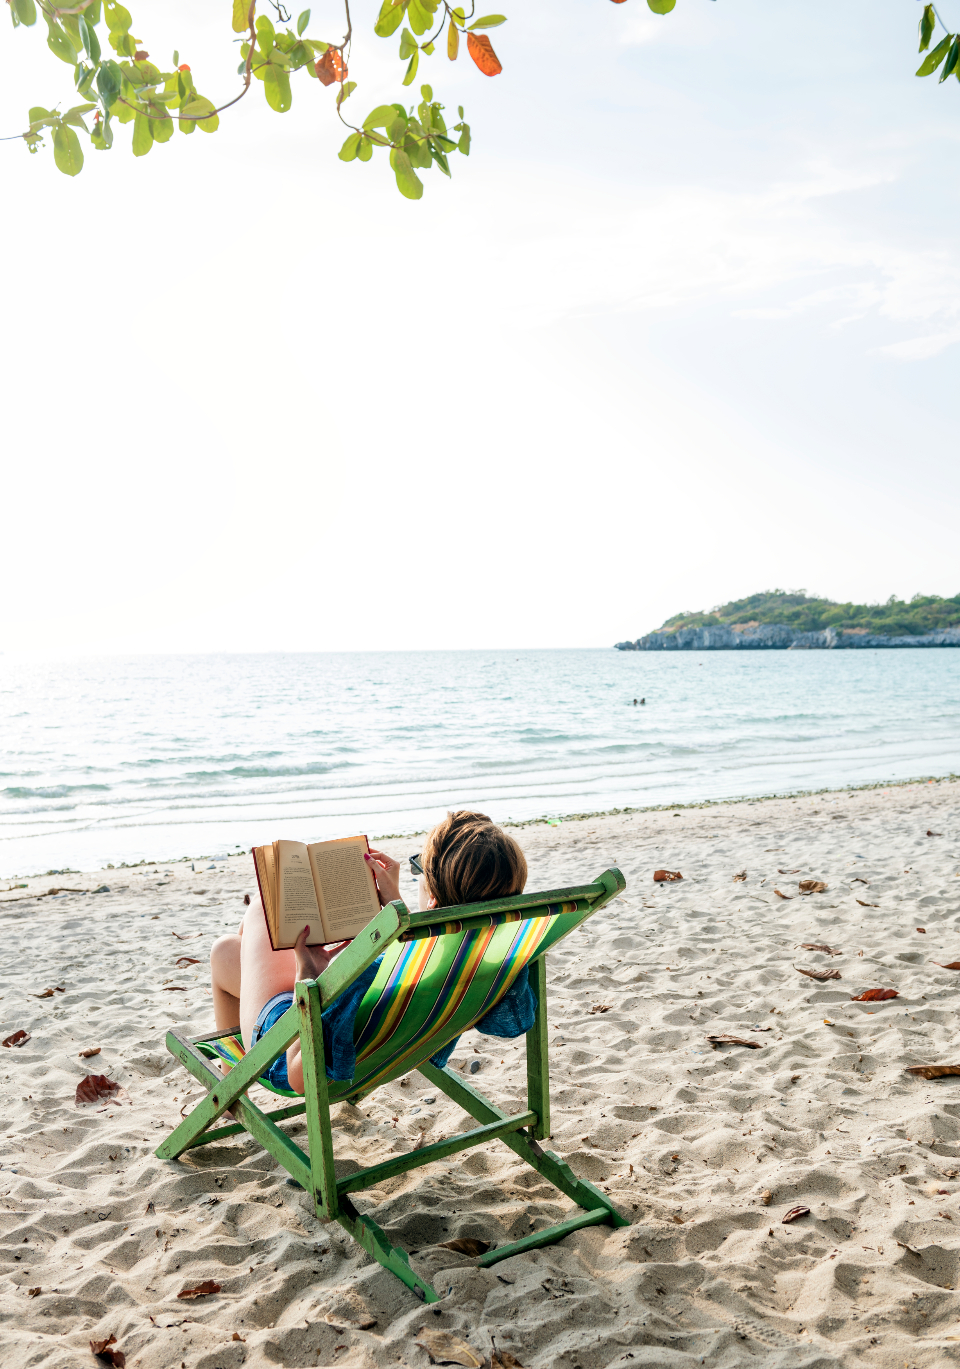 beach book calm casual chill destination expedition exploration freedom holiday journey leisure life location peace place reading relax relaxation rest sand sea serenity summer tour tourism transportation travel trav